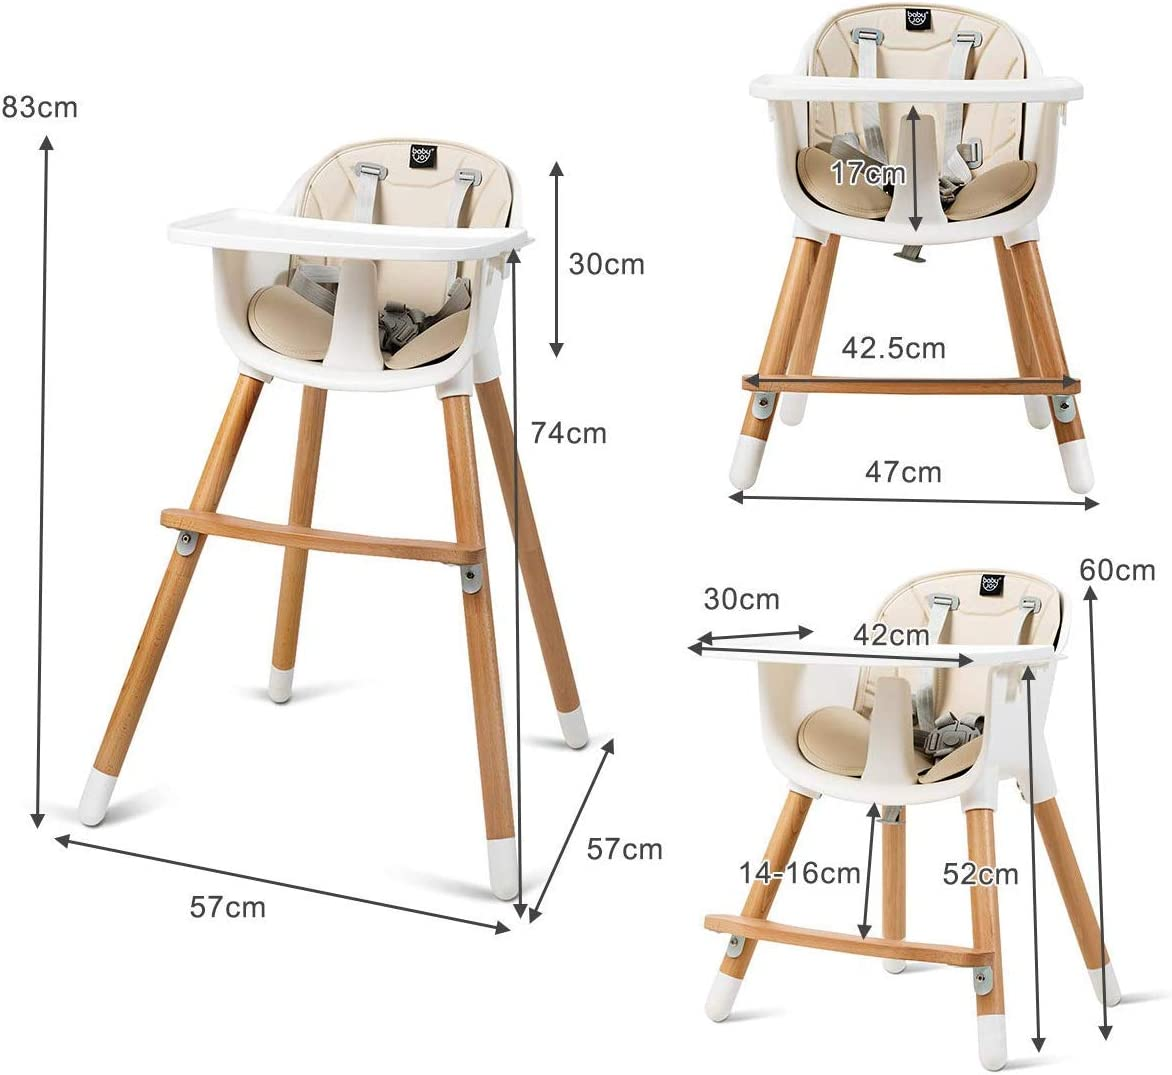 GYMAX Baby Dining Feeding Highchair with Adjustable Legs and 5-Point Seat Harness Multi-Functional Stand-Alone High Chair for Infants Kids Toddlers